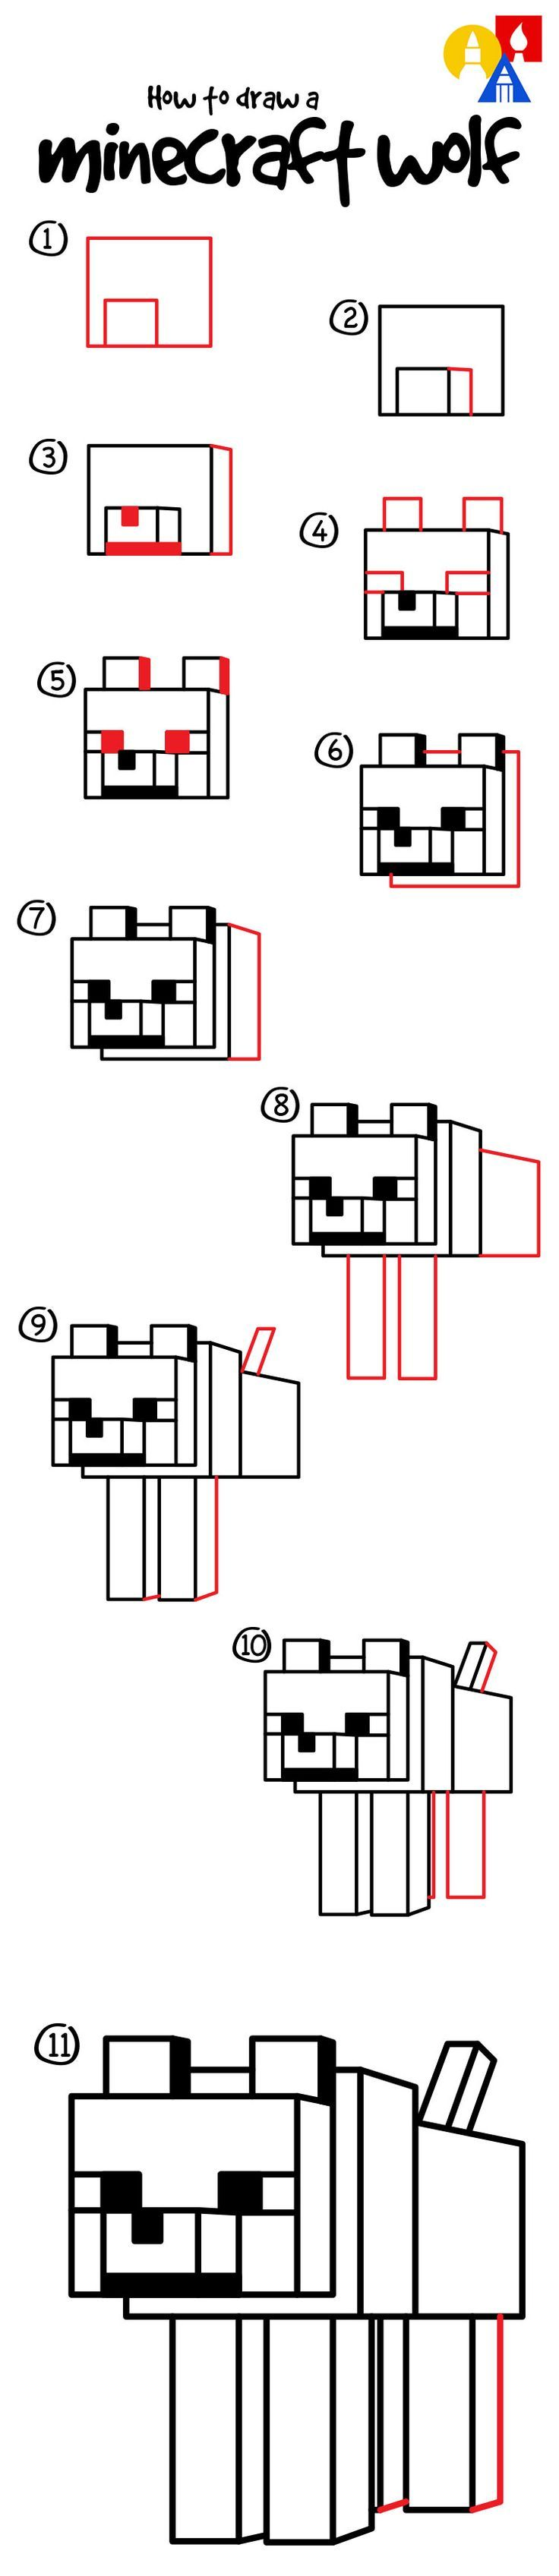 26 Best Minecraft Redstone Creations Images On Pinterest How To Make An Instant Off Delayed Circuit Draw A Wolf Dog Art For Kids Hub